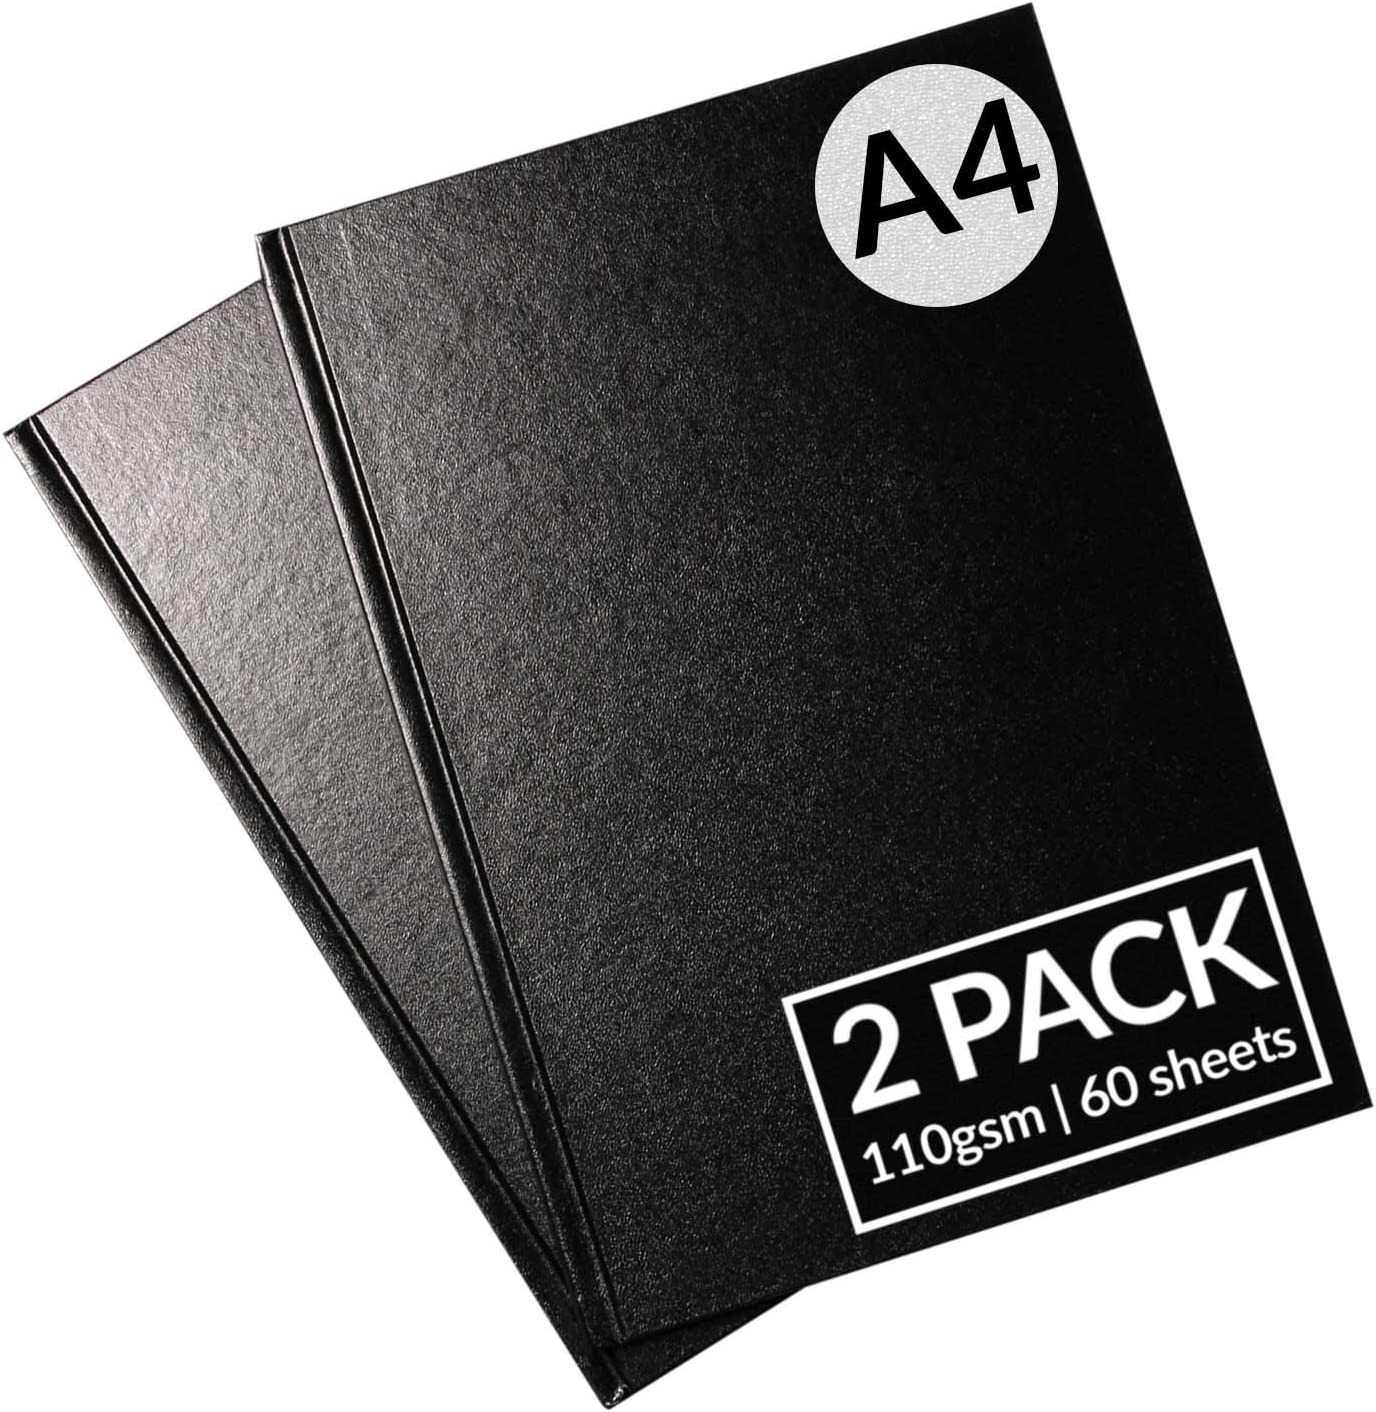 60 Perforated Sheets A4 Sketchbook A4 Portrait Size A4 Hardback Bound Sketchbook Sketch Drawing Book with Hardback Cover Acid Free White Cartridge Paper by Artistik Pack of 2 110 GSM